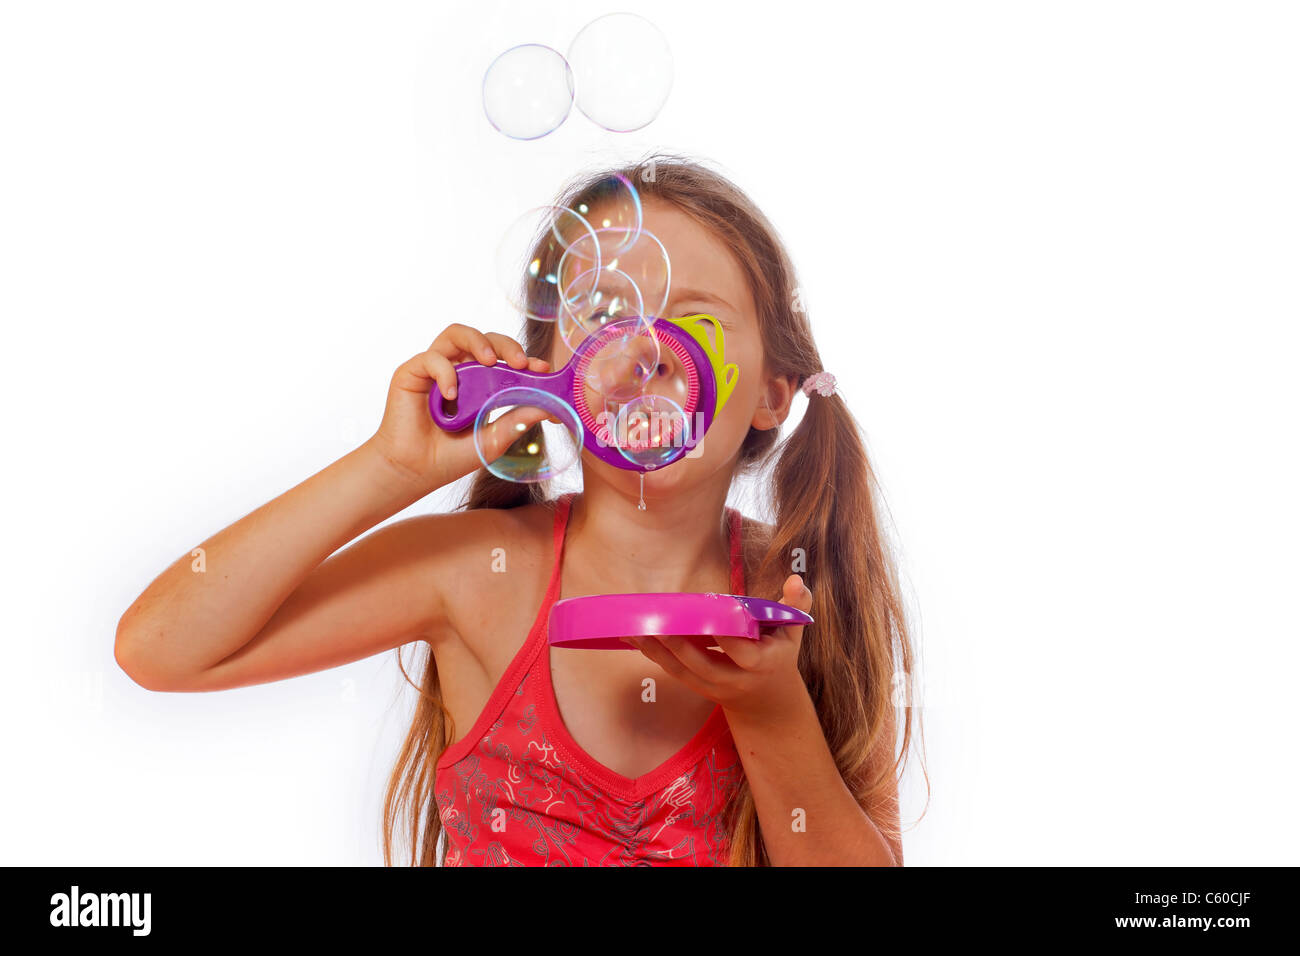 eight year old girl playing with soap bubbles - Stock Image